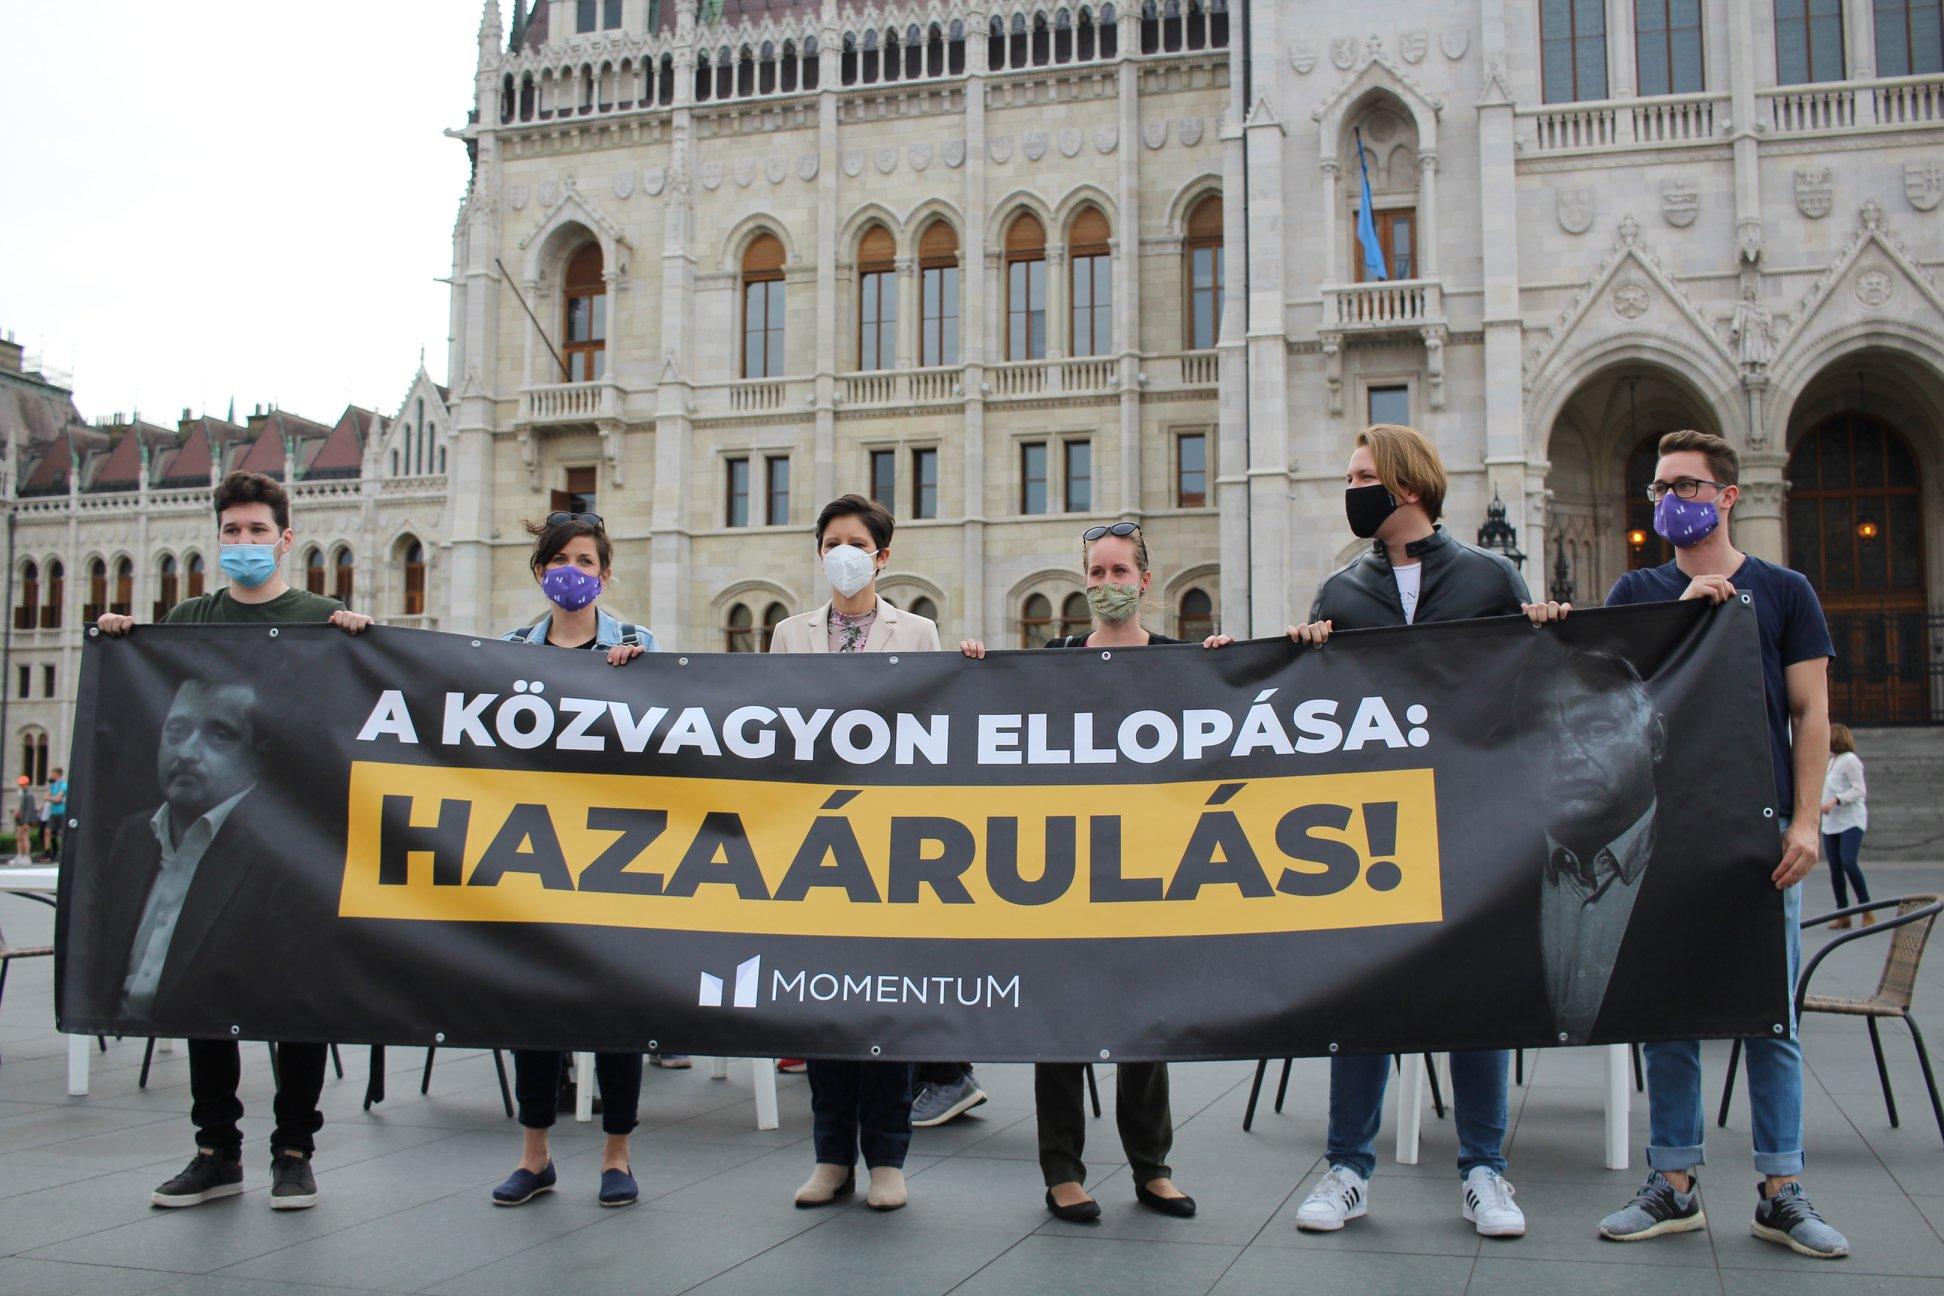 Momentum Sets Up 'Terrace' at Parliament To Protest Hungary's 'University Privatization'